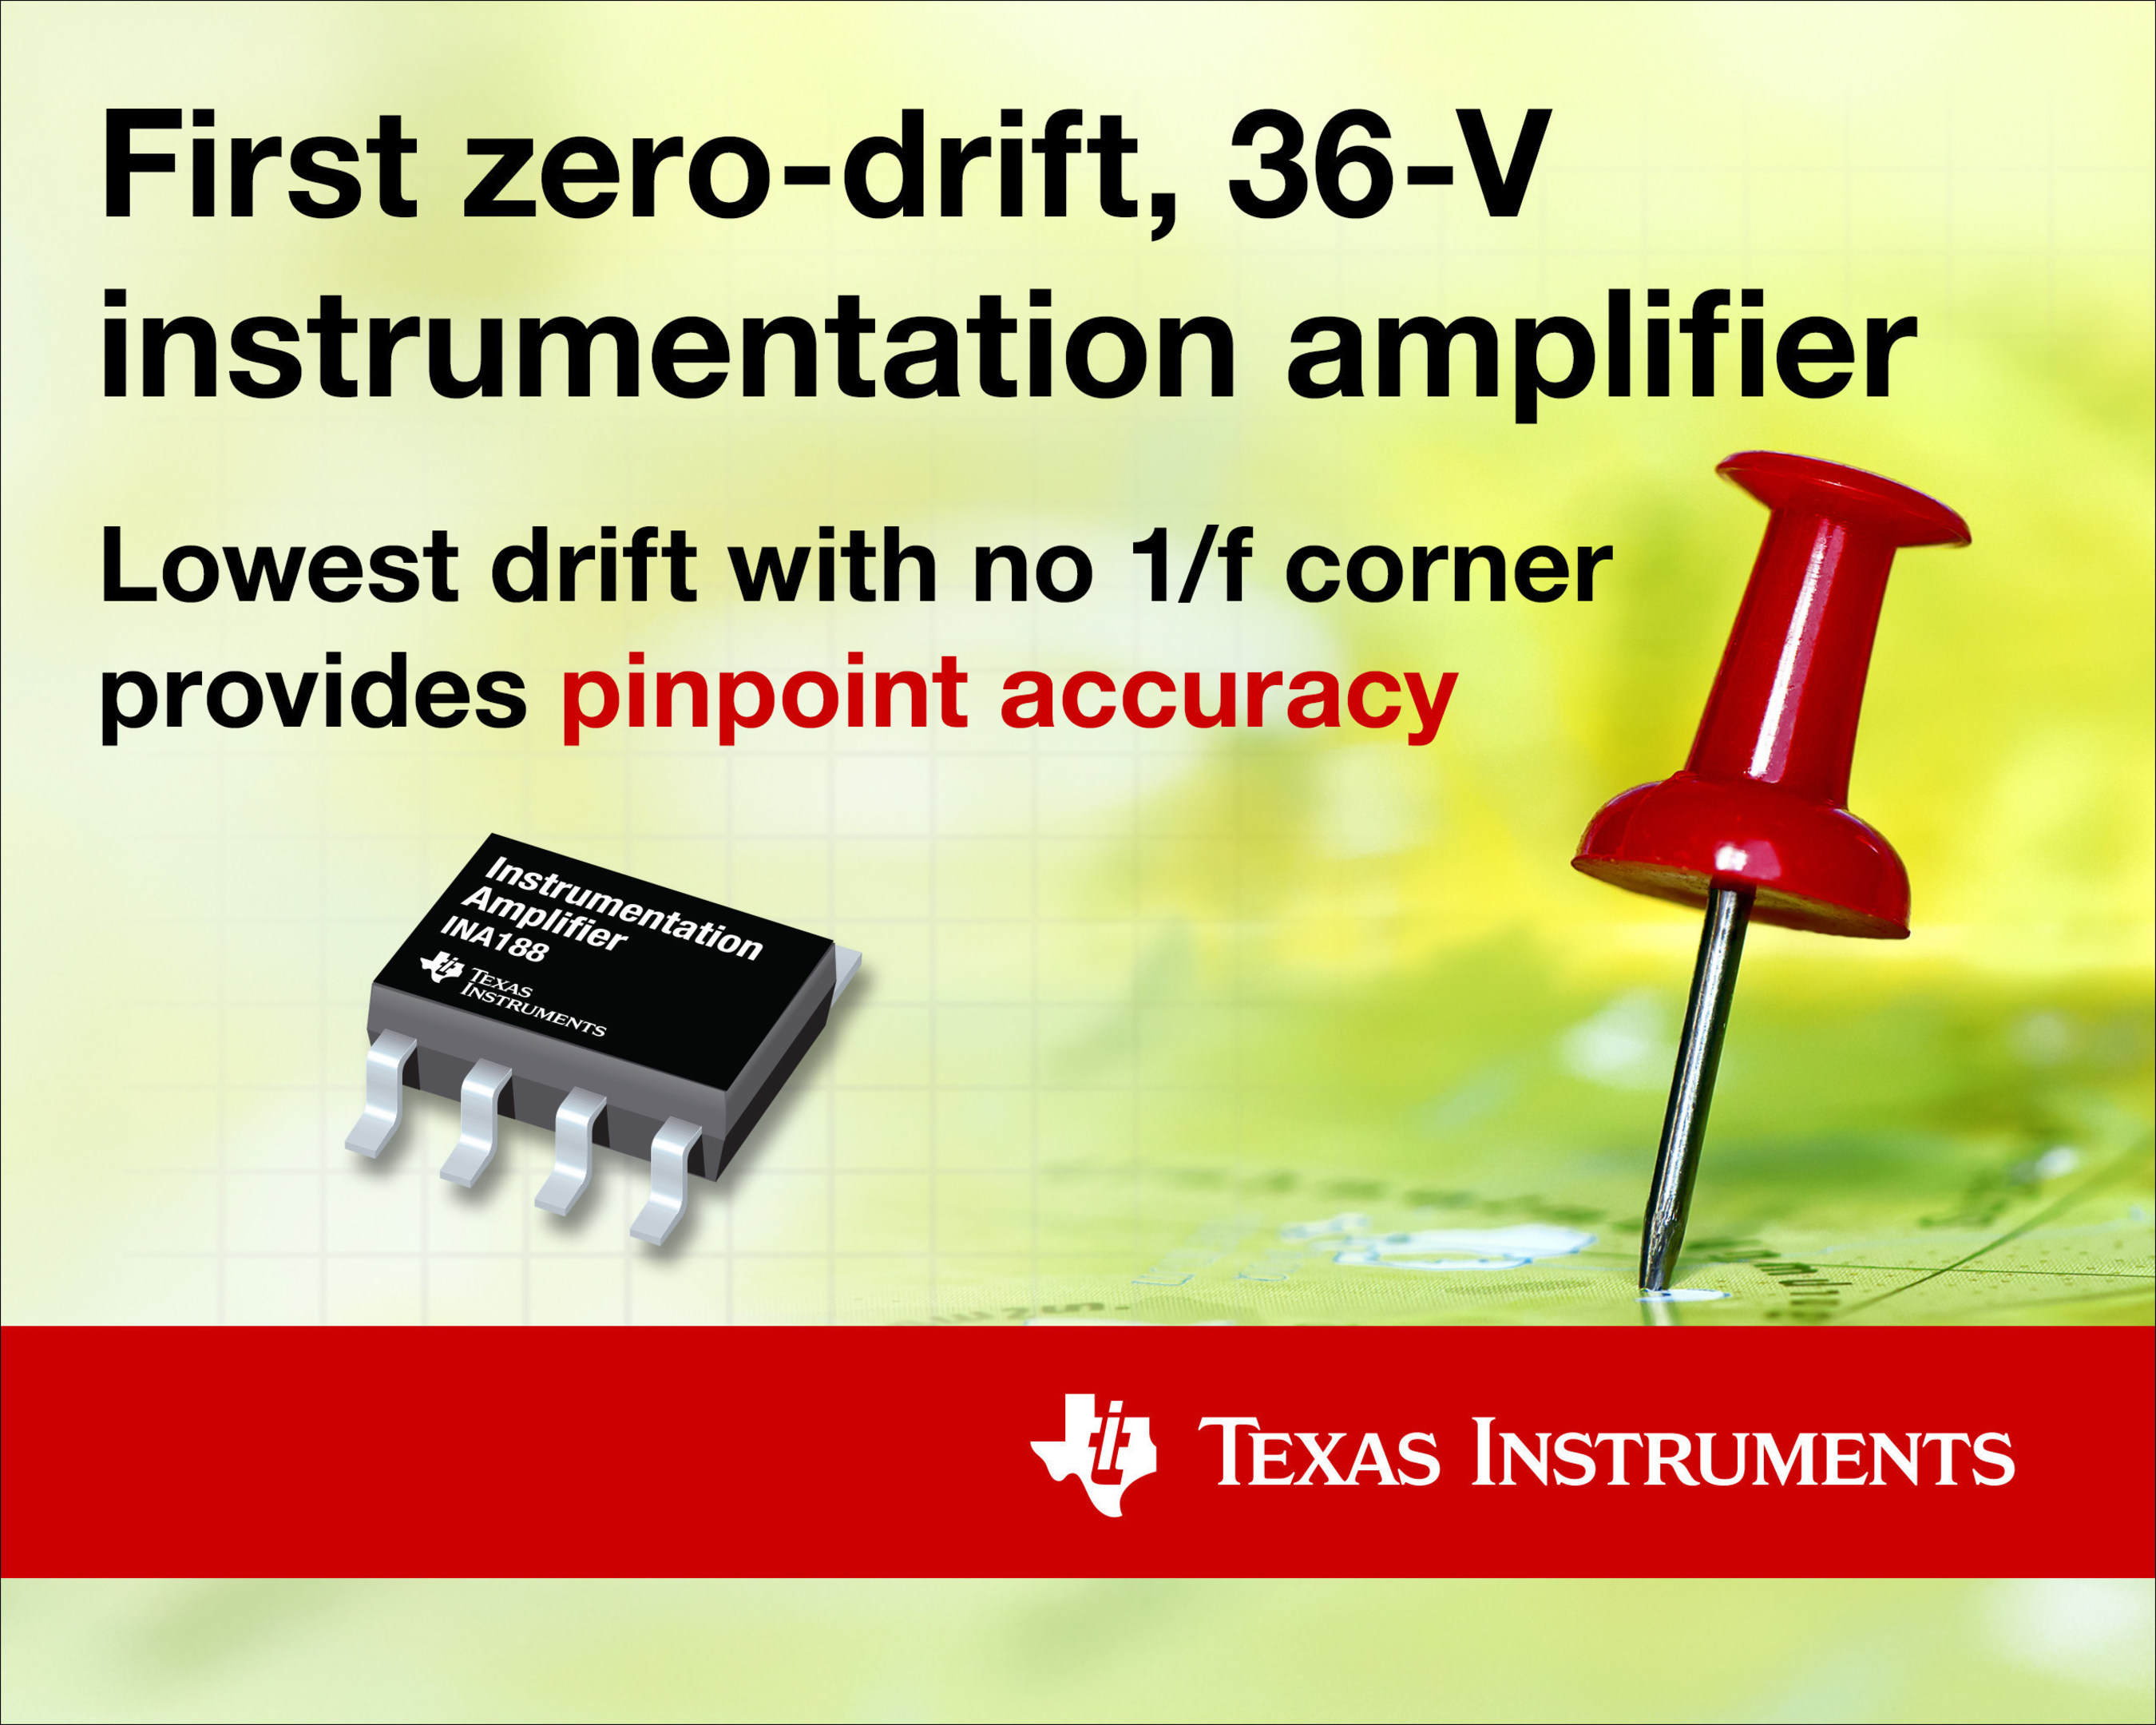 TI enables precise measurement with the first zero-drift, 36-V instrumentation amplifier